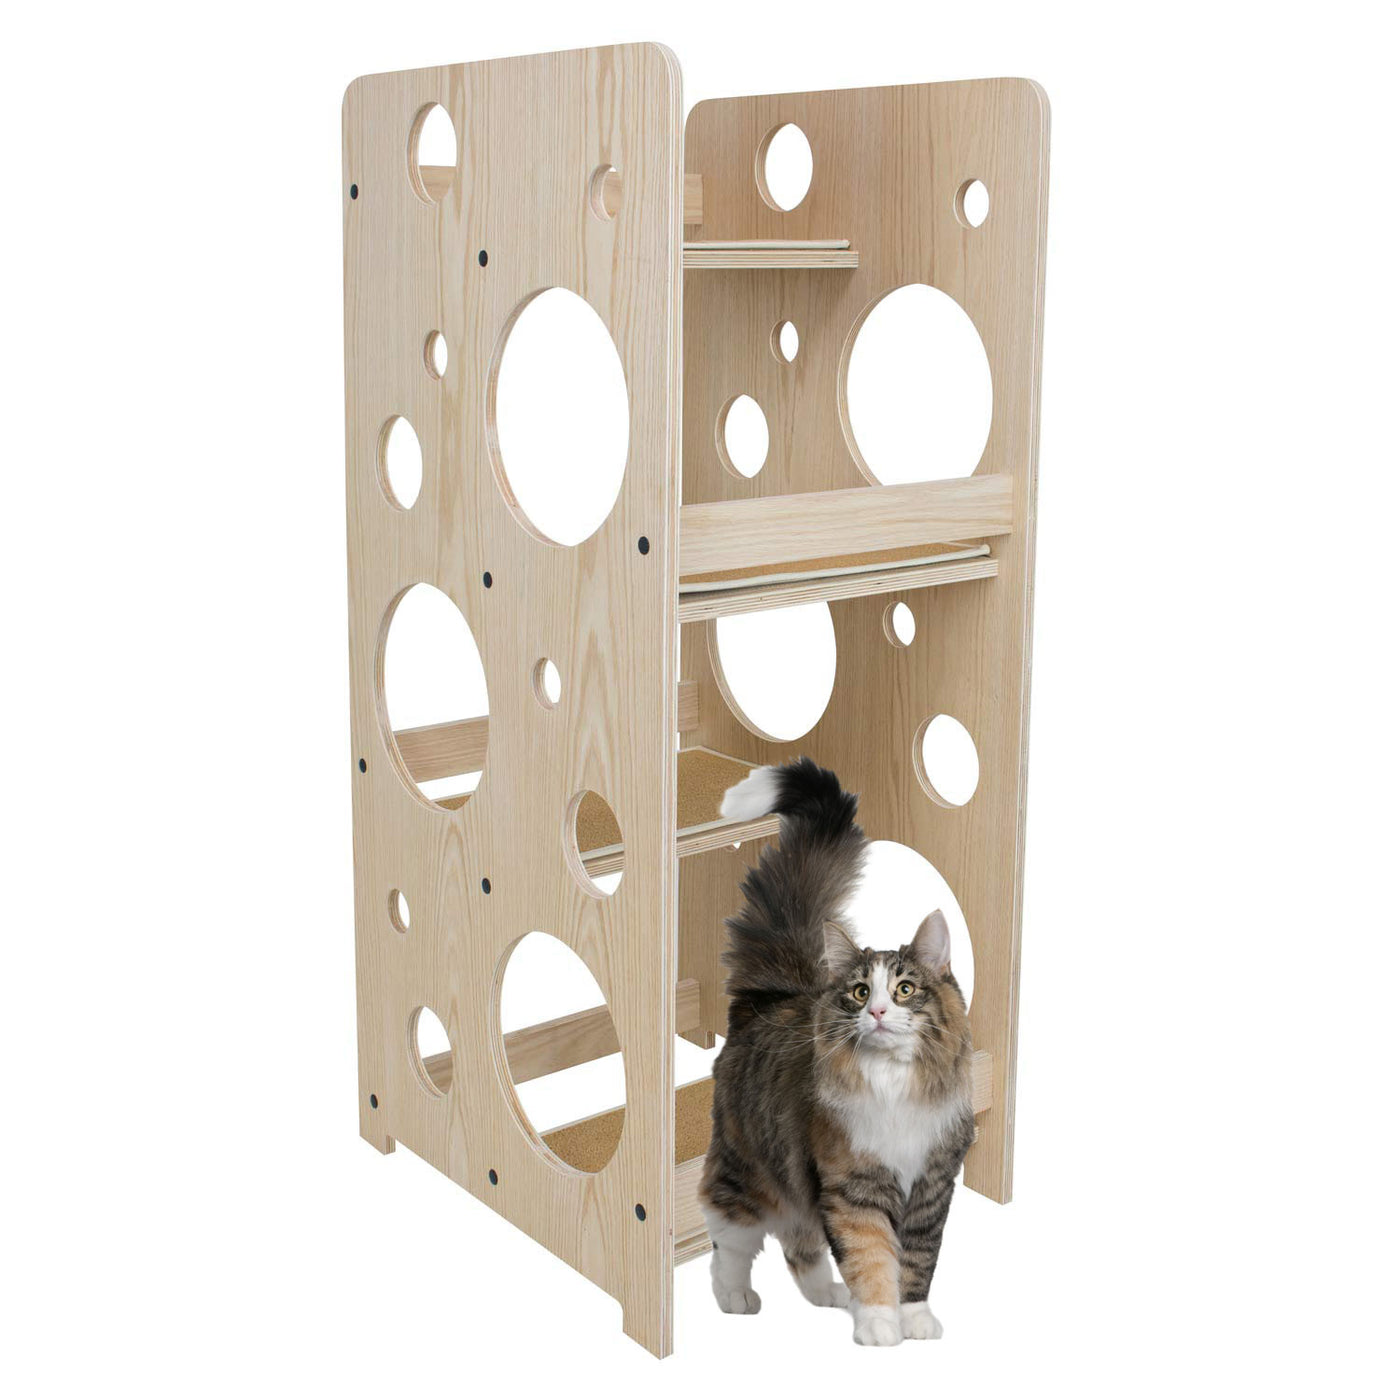 Creative Cat Towers: Modern Wood Bubble Cat Tower – Frontpet.com